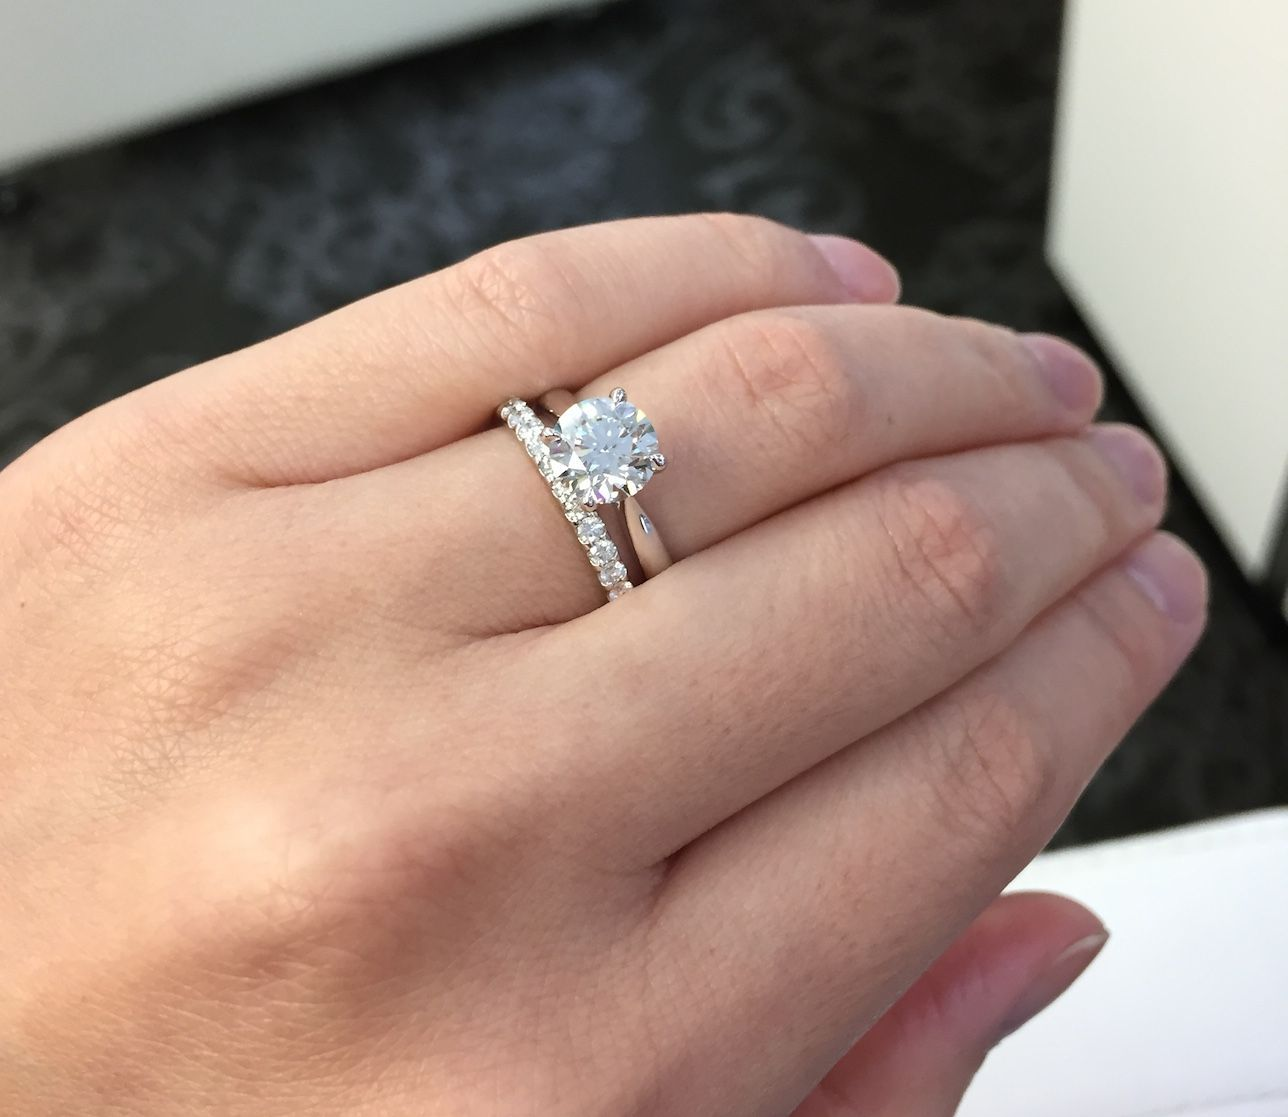 Show Me Your Solitaire Engagement Ring W Wedding Band Weddingbee Page 11 Diamond Wedding Bands Solitaire Engagement Ring Wholesale Engagement Rings